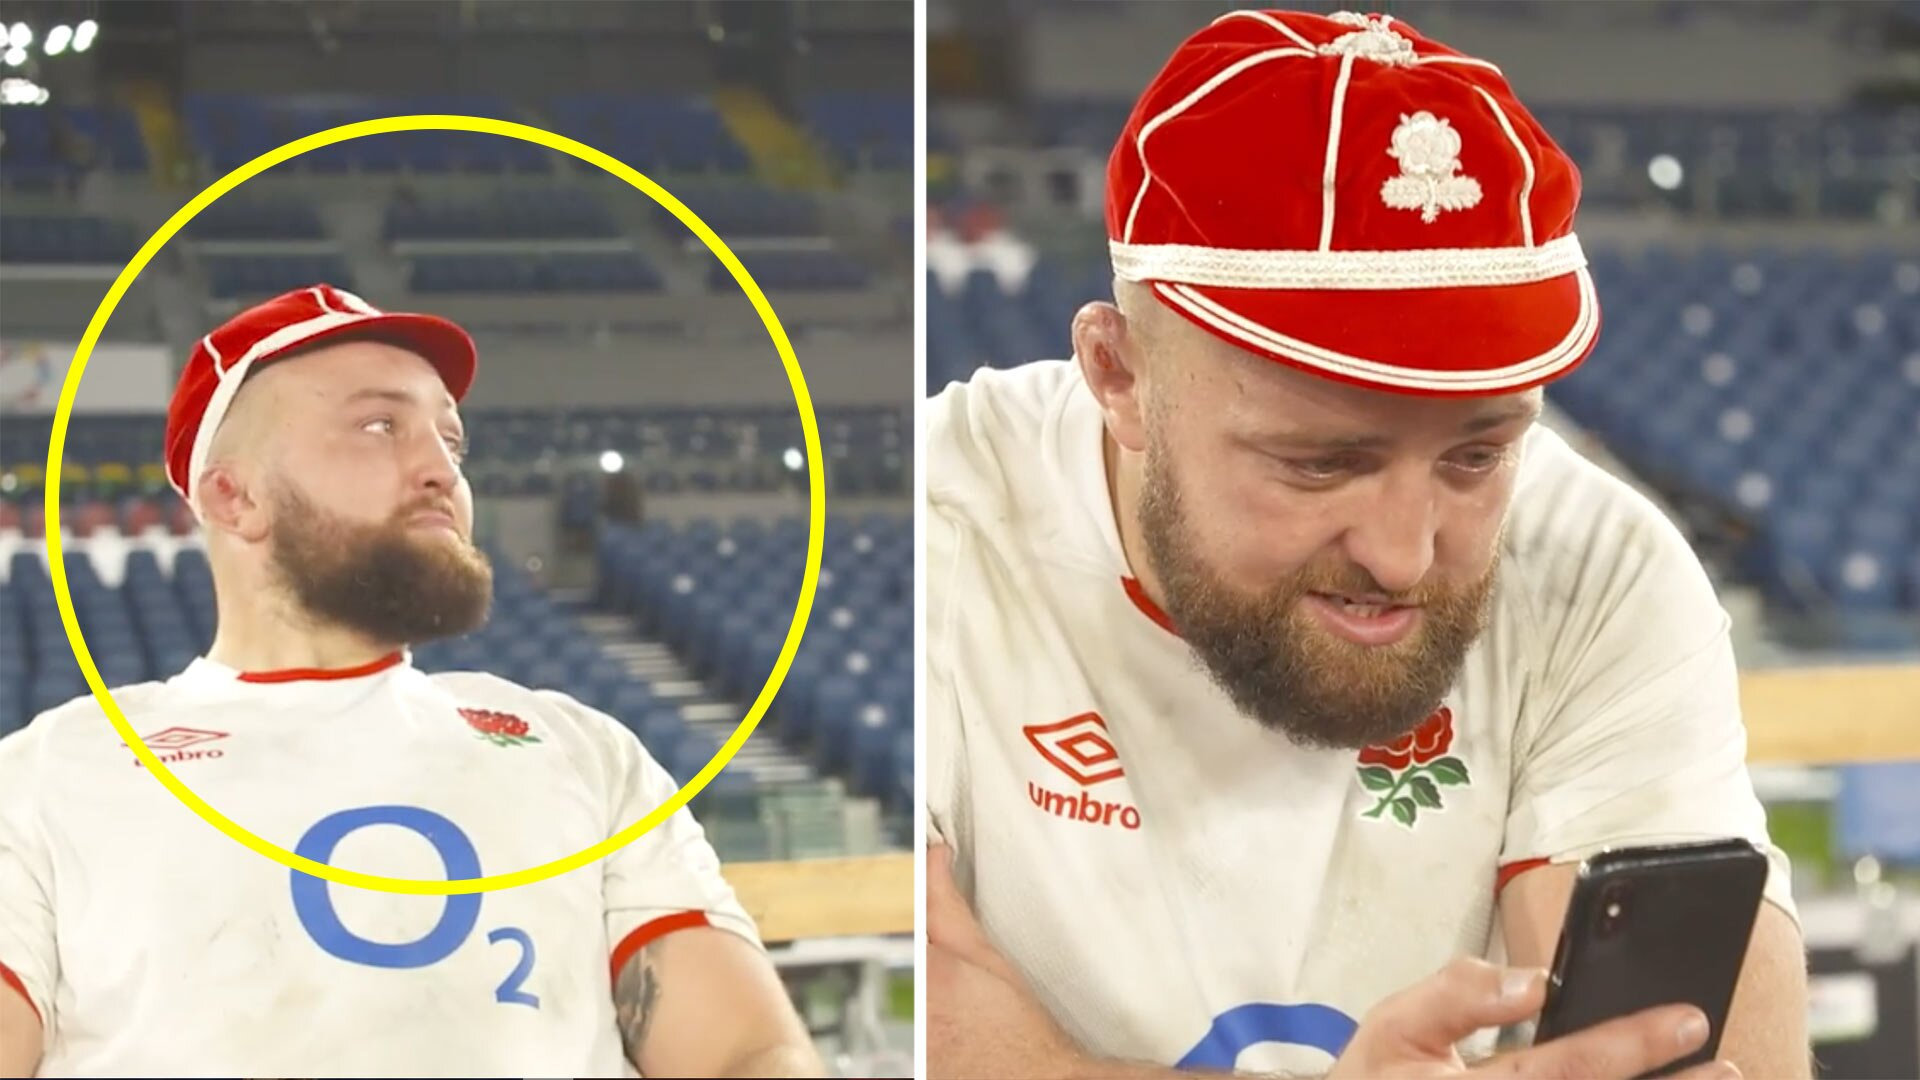 Emotional video of England rugby player calling his family after winning his first cap is going viral online